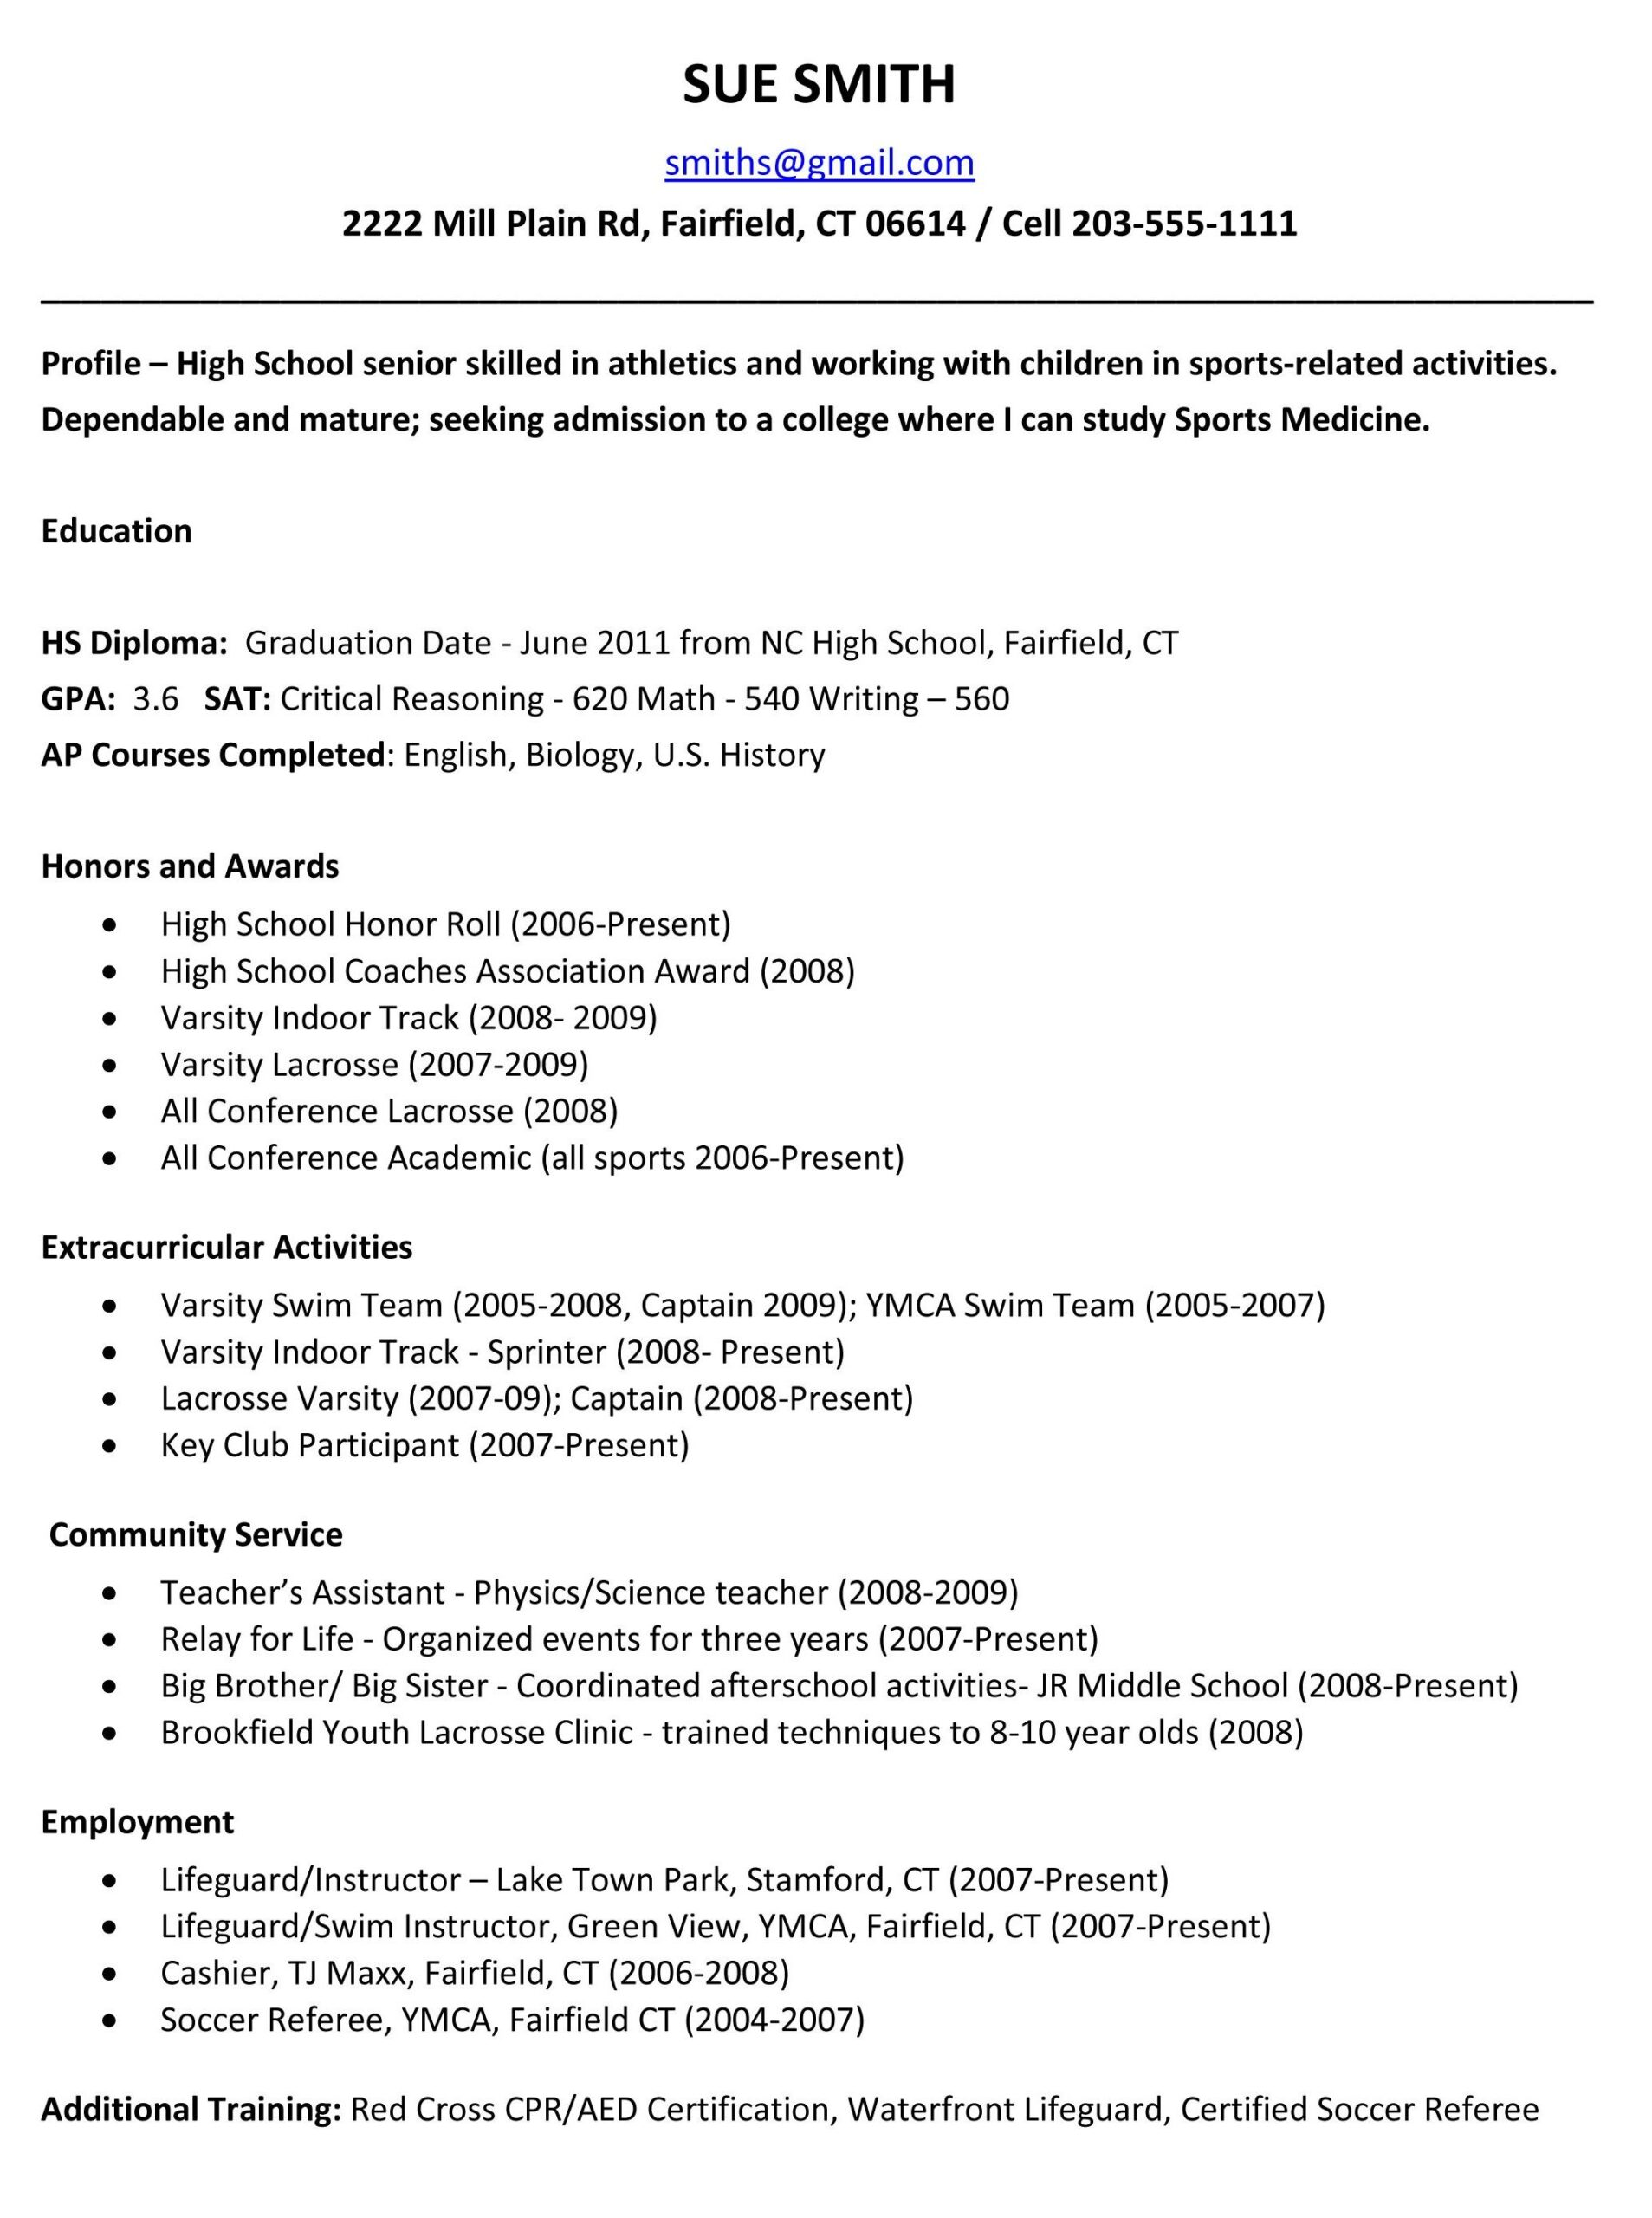 sample resumes high school resume template college application examples for students with Resume Resume Examples For High School Students With Experience